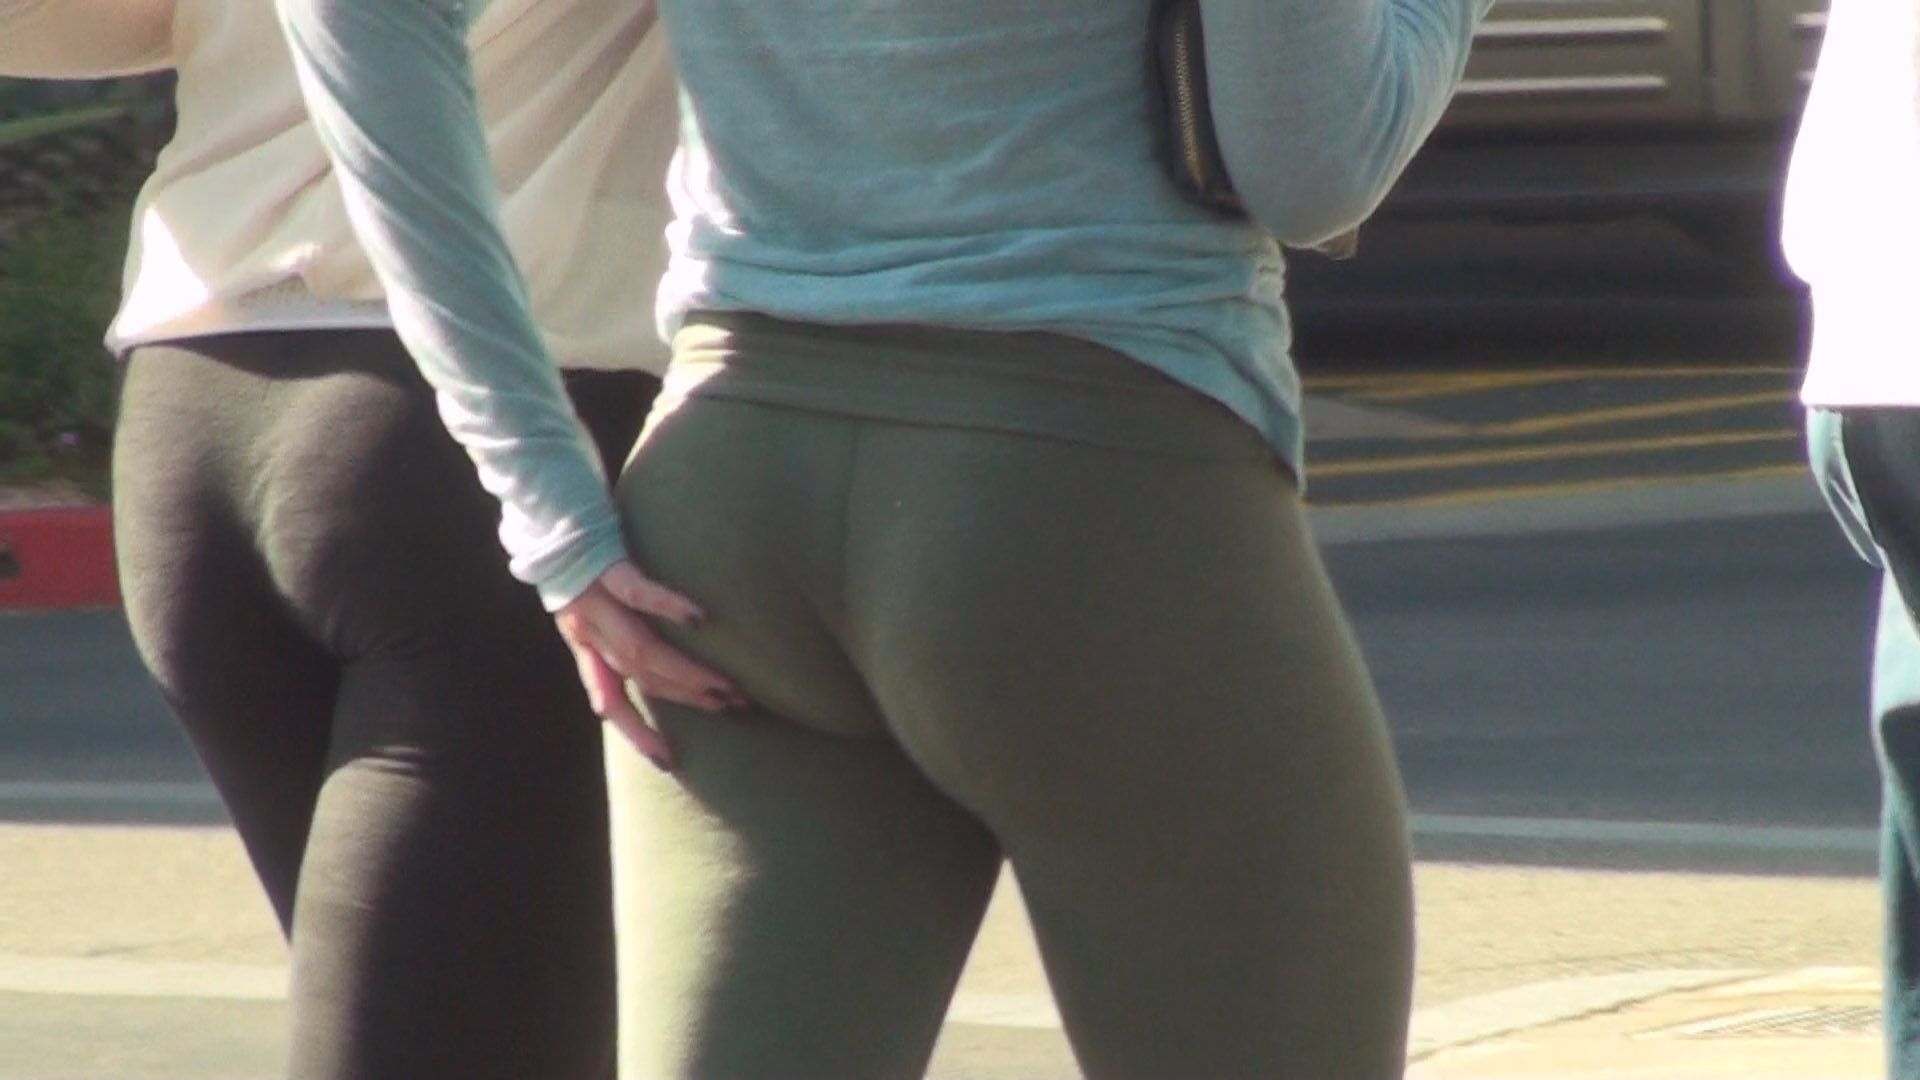 Yoga Pants Butt video at CandidBomb.com | Hot Girls in Yoga Pants ...